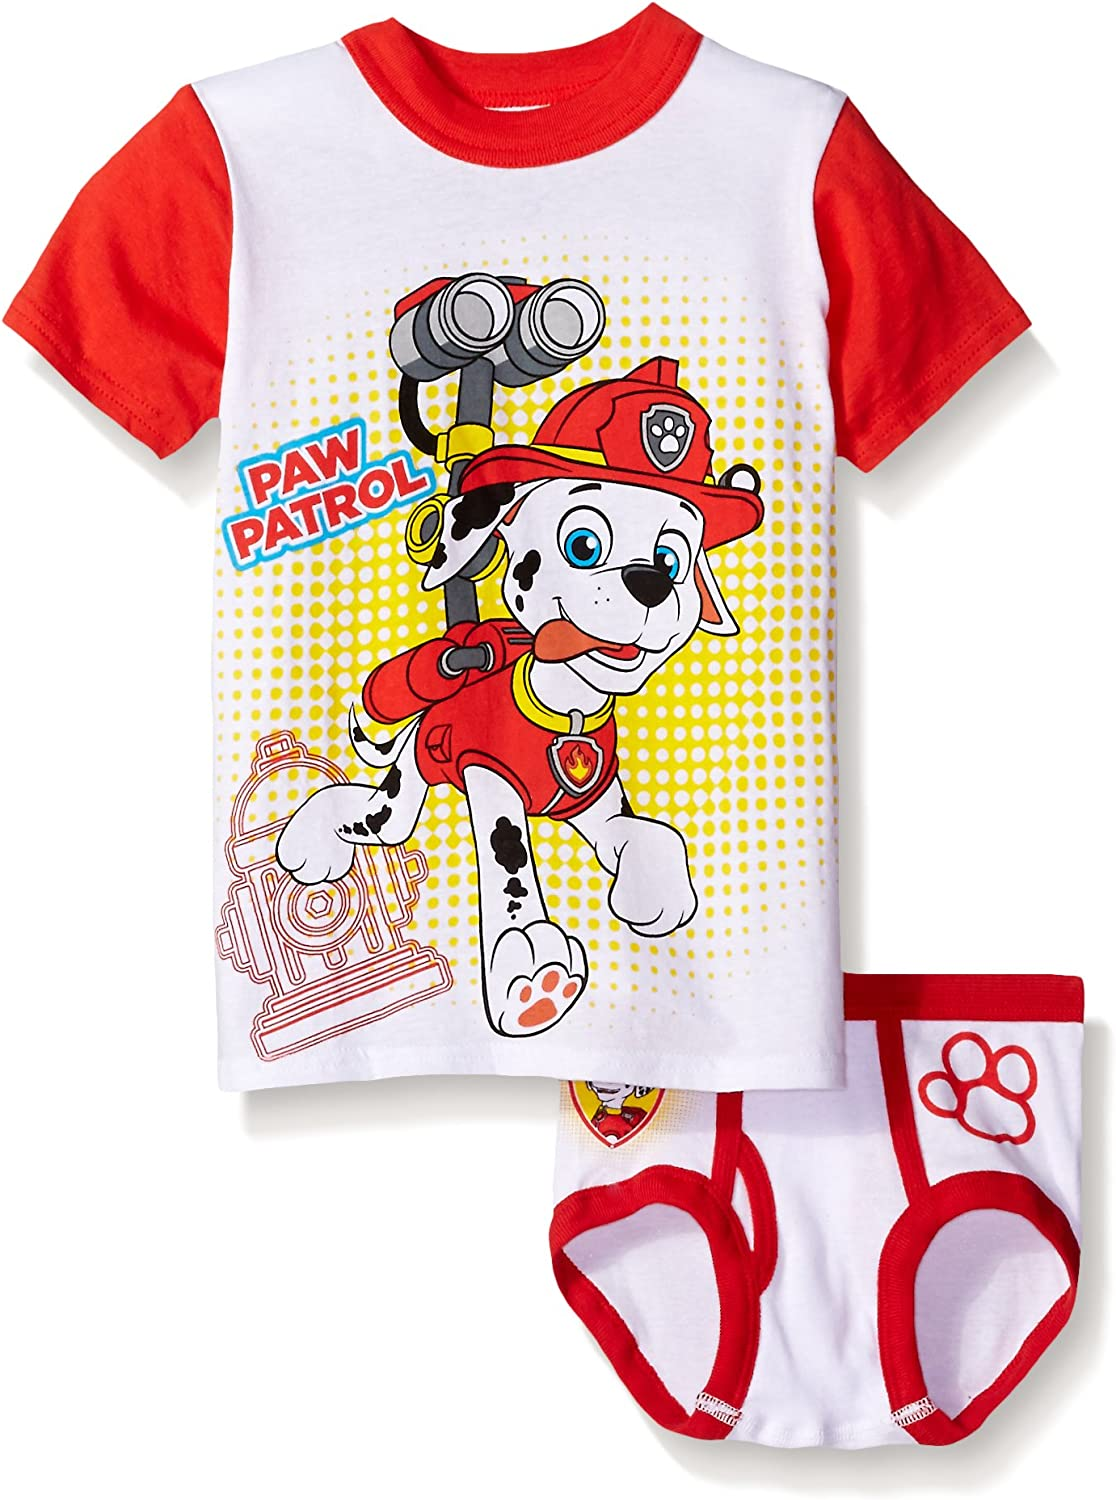 Paw Patrol Adventure Bay Boys 2 Piece Mesh Tank /& Short Set